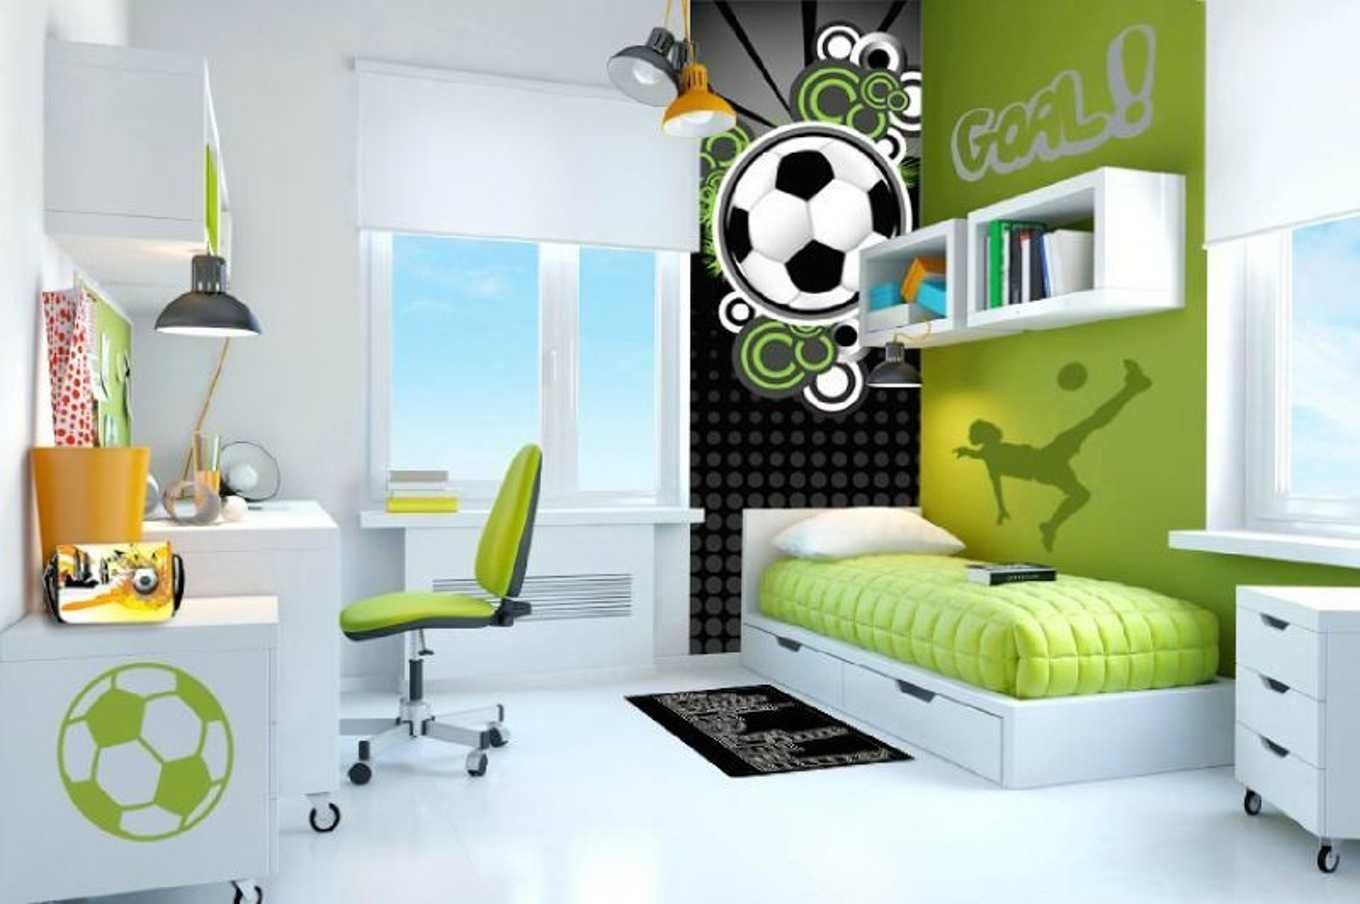 Awesome Deco Chambre Garcon 11 Ans That You Must Know You Re In